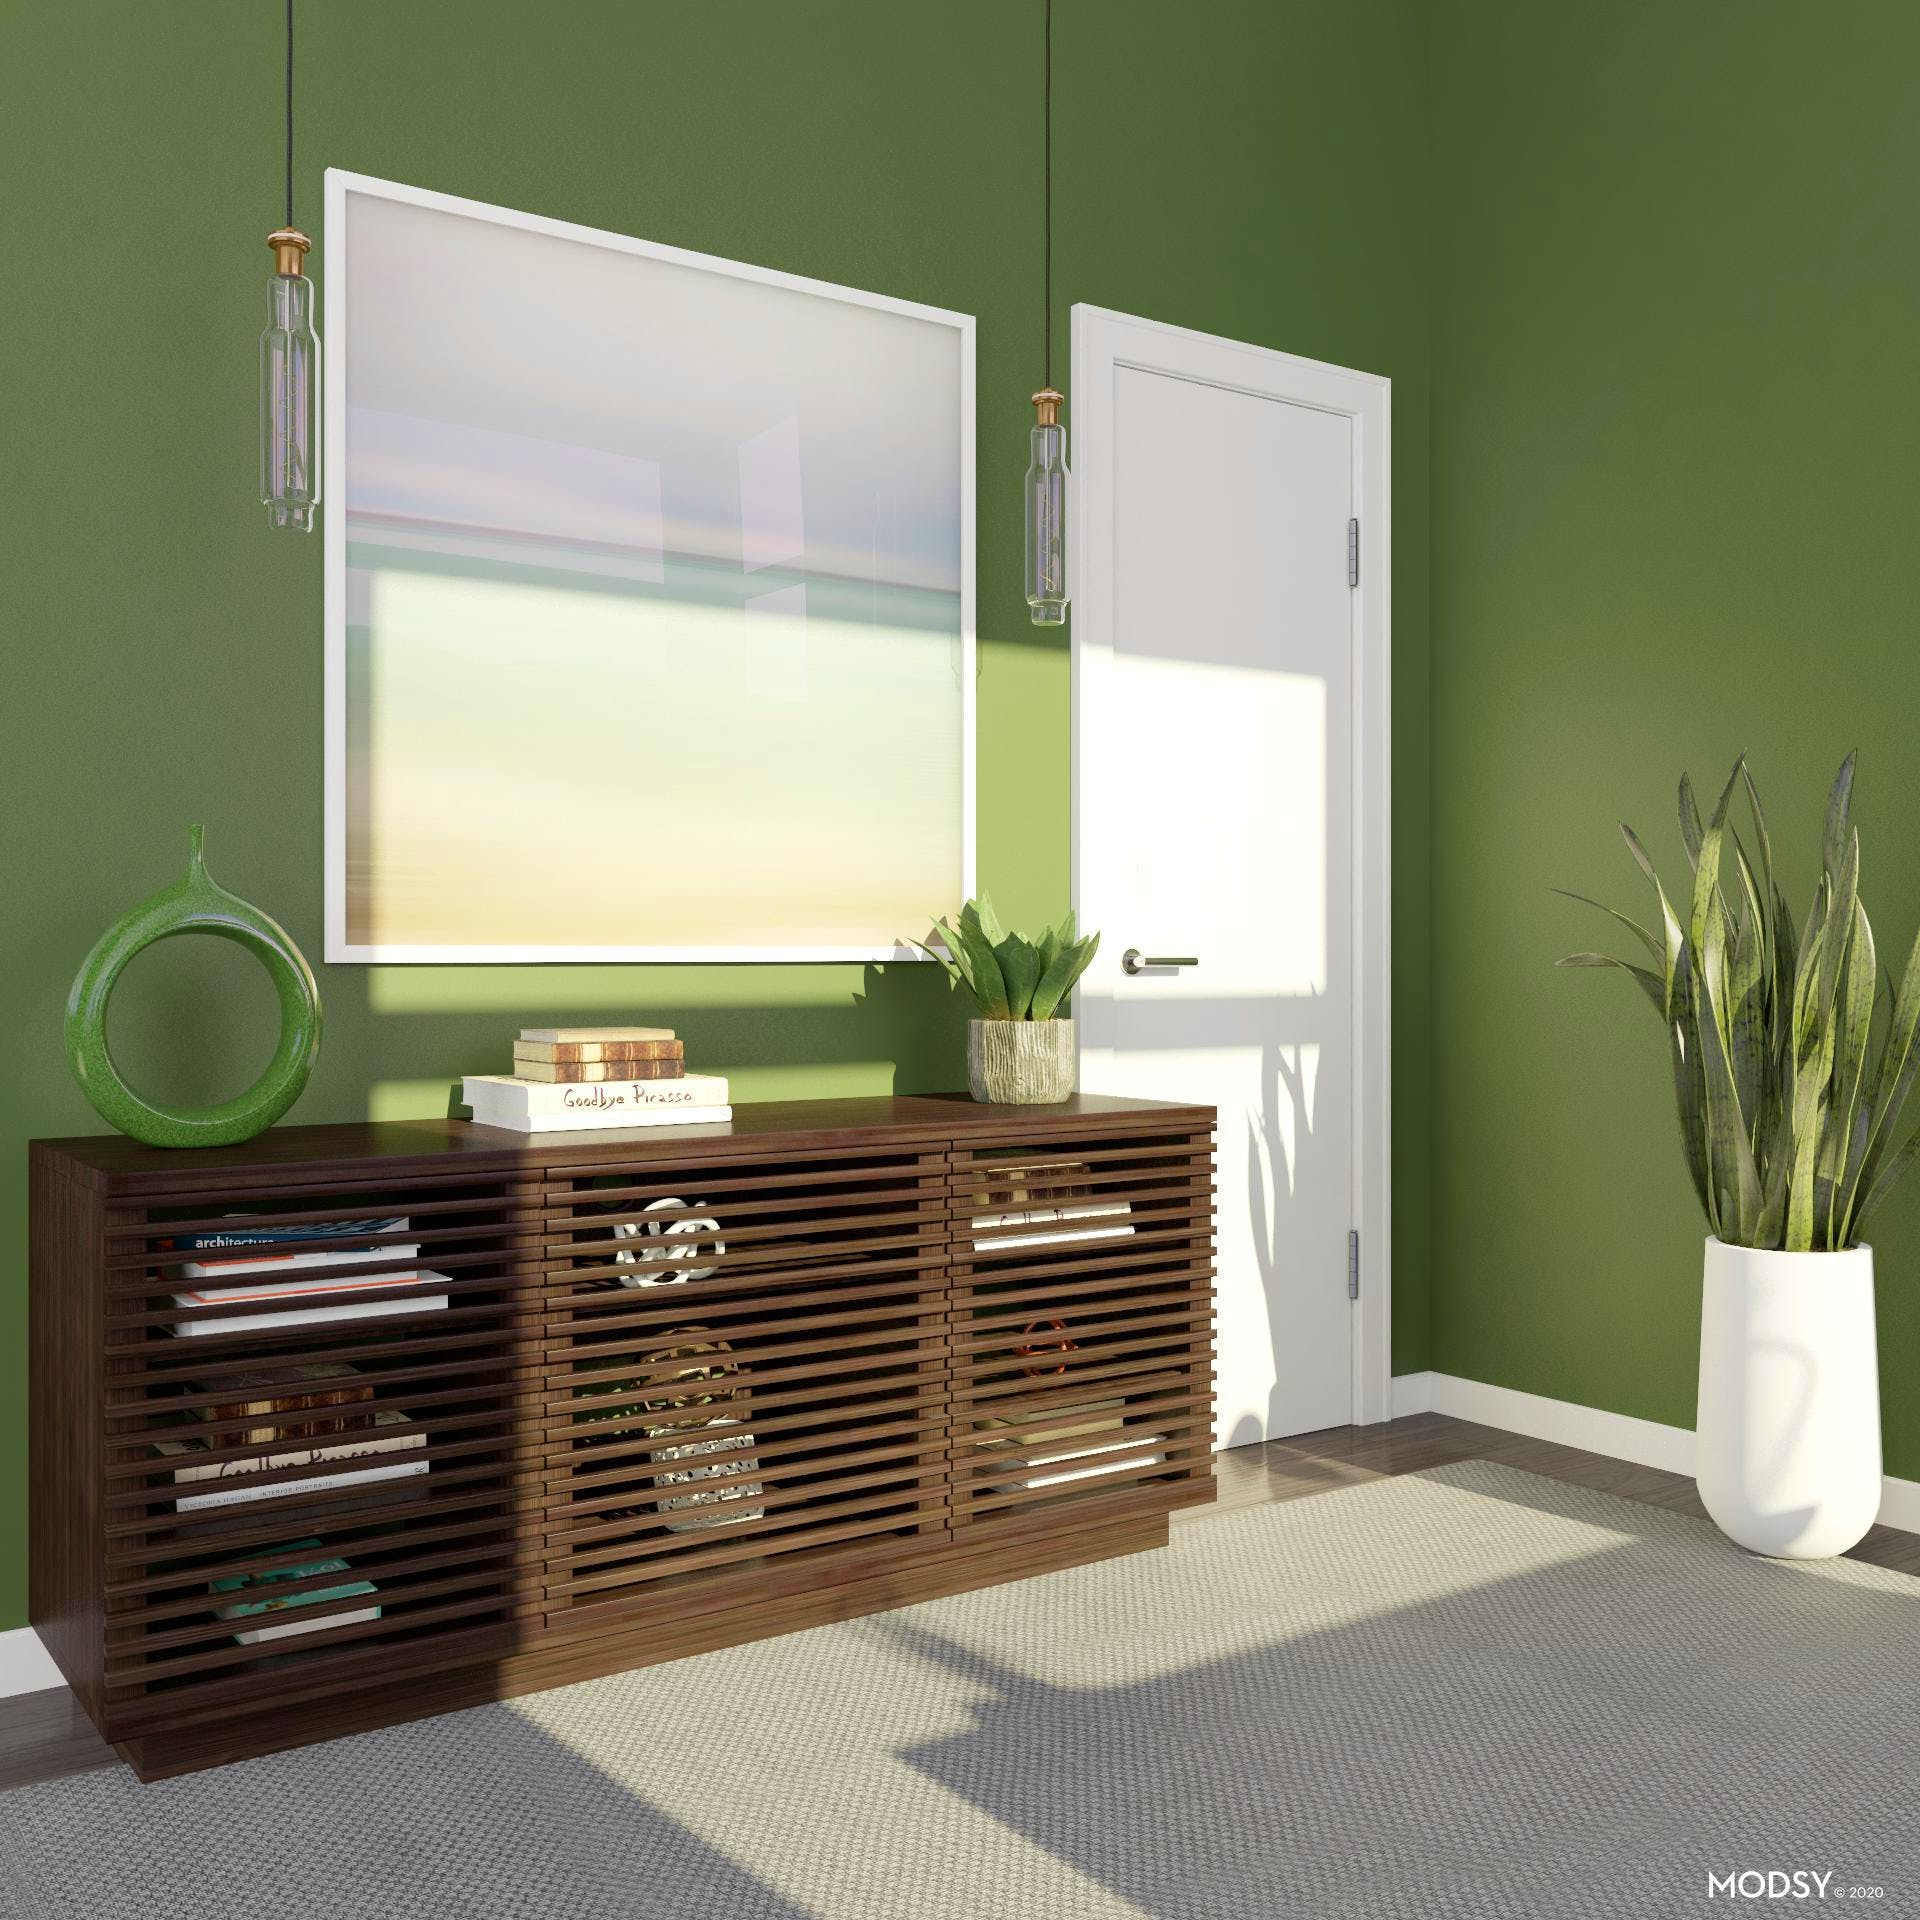 Storage with a Pop of Green